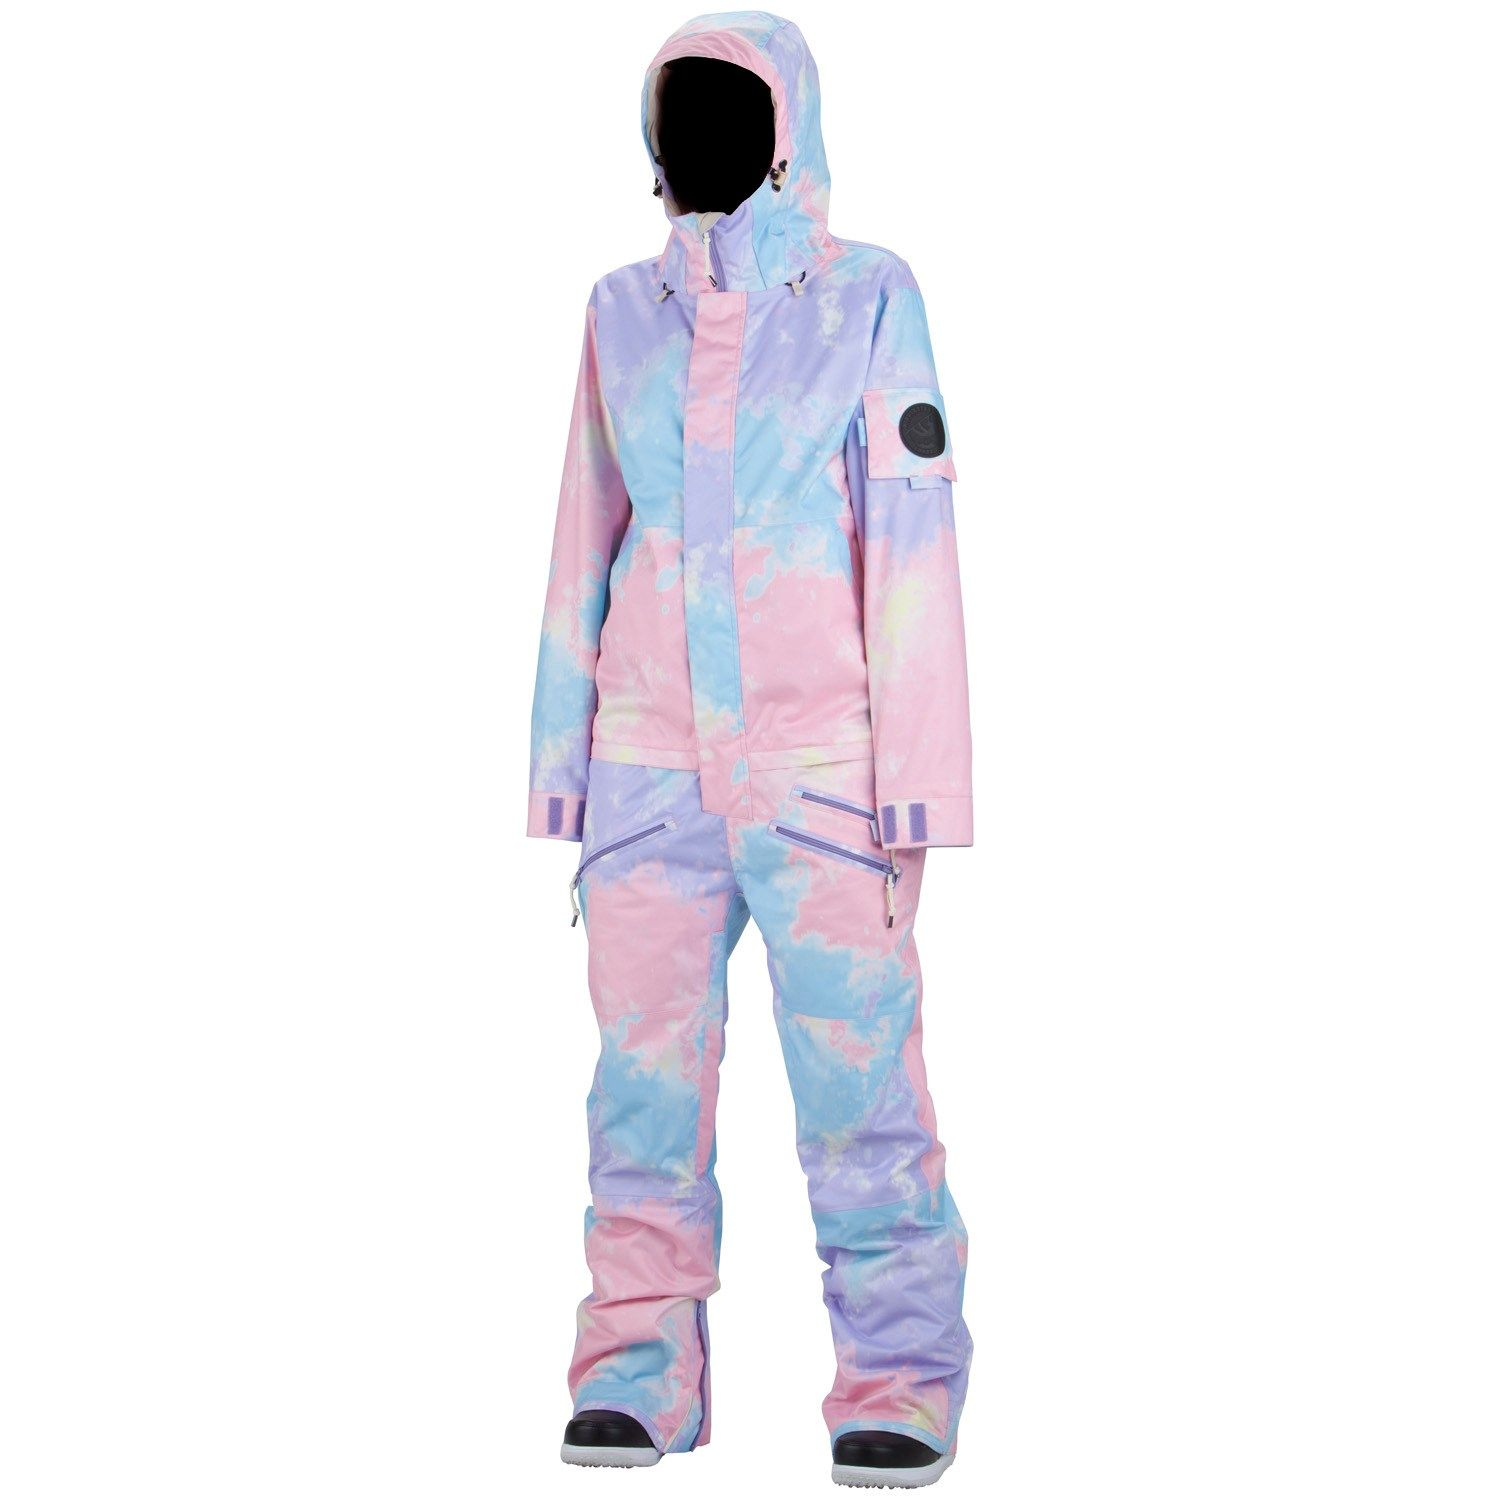 74a93d9e8495 Airblaster Freedom Suit - Women s